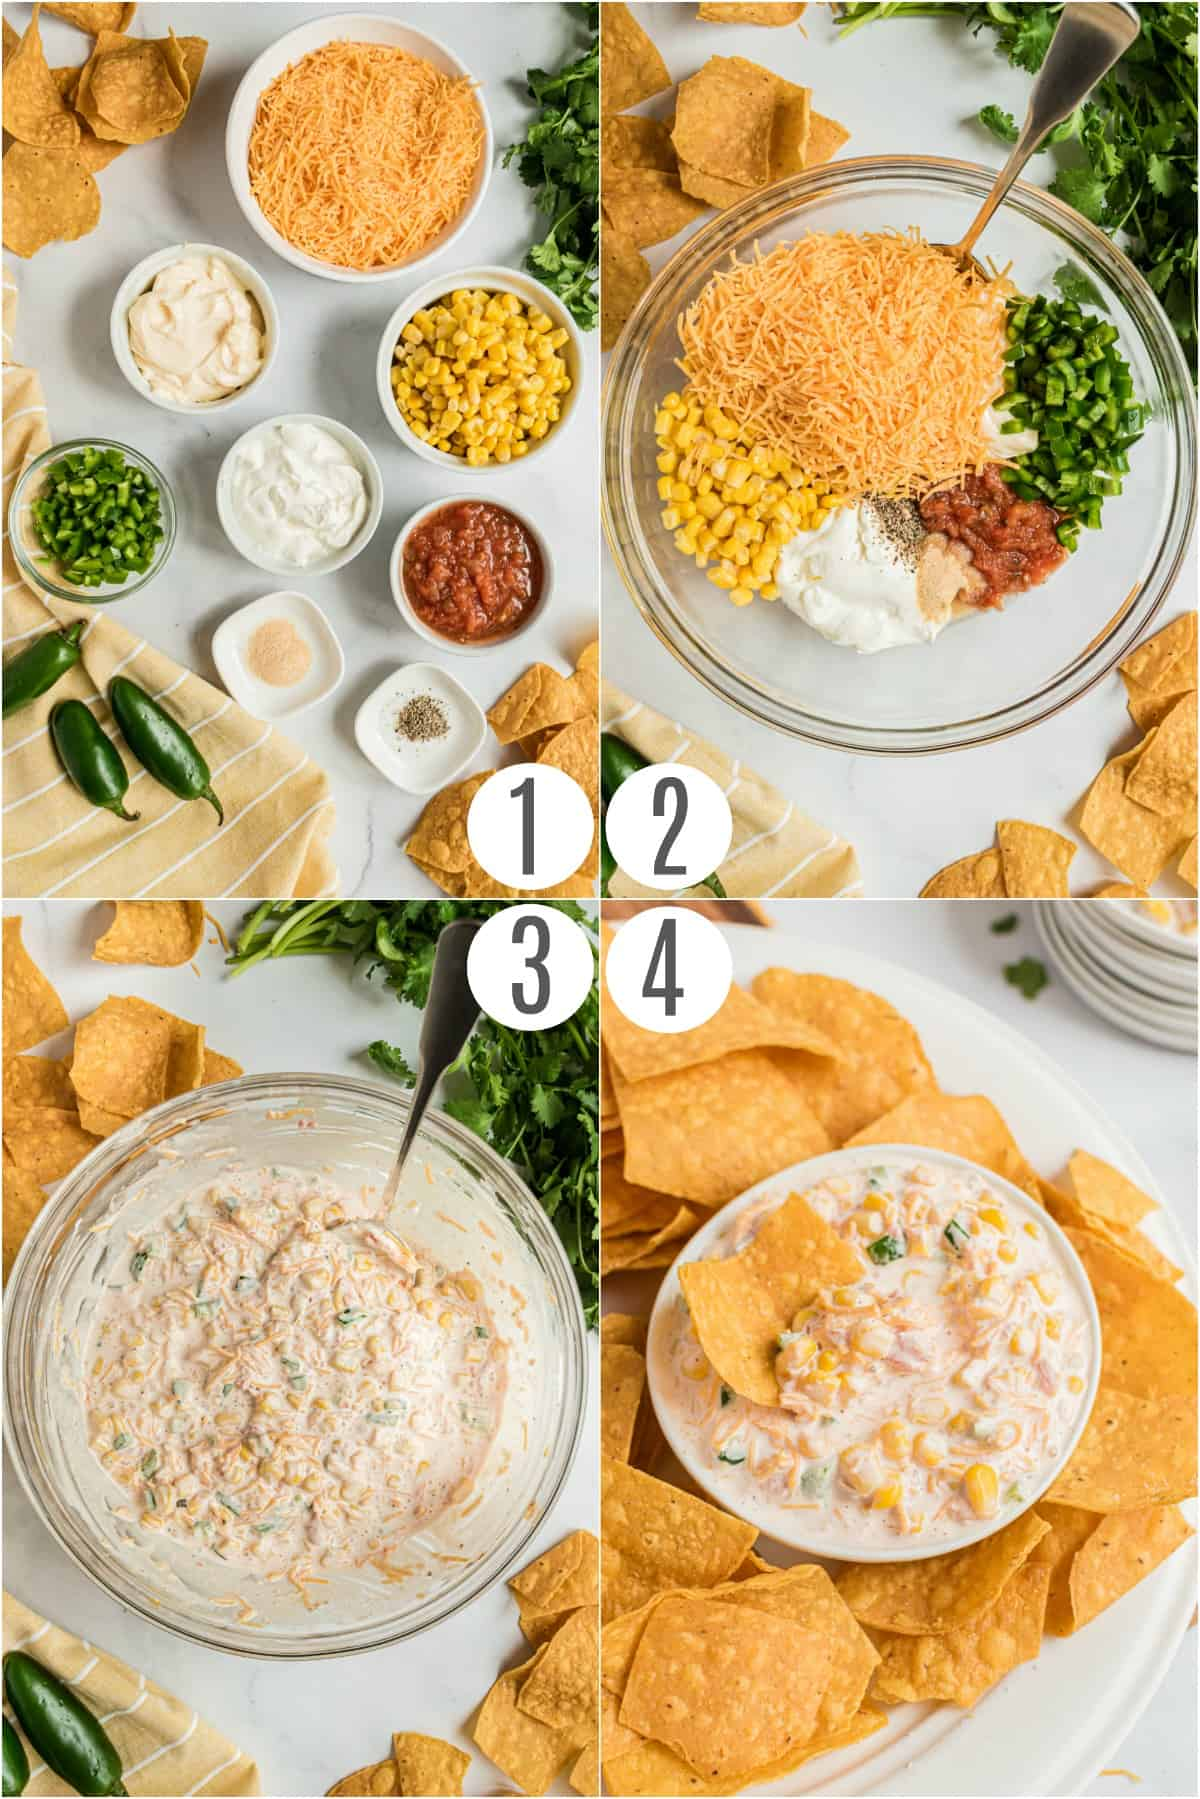 Step by step photos showing how to make jalapeno corn dip.